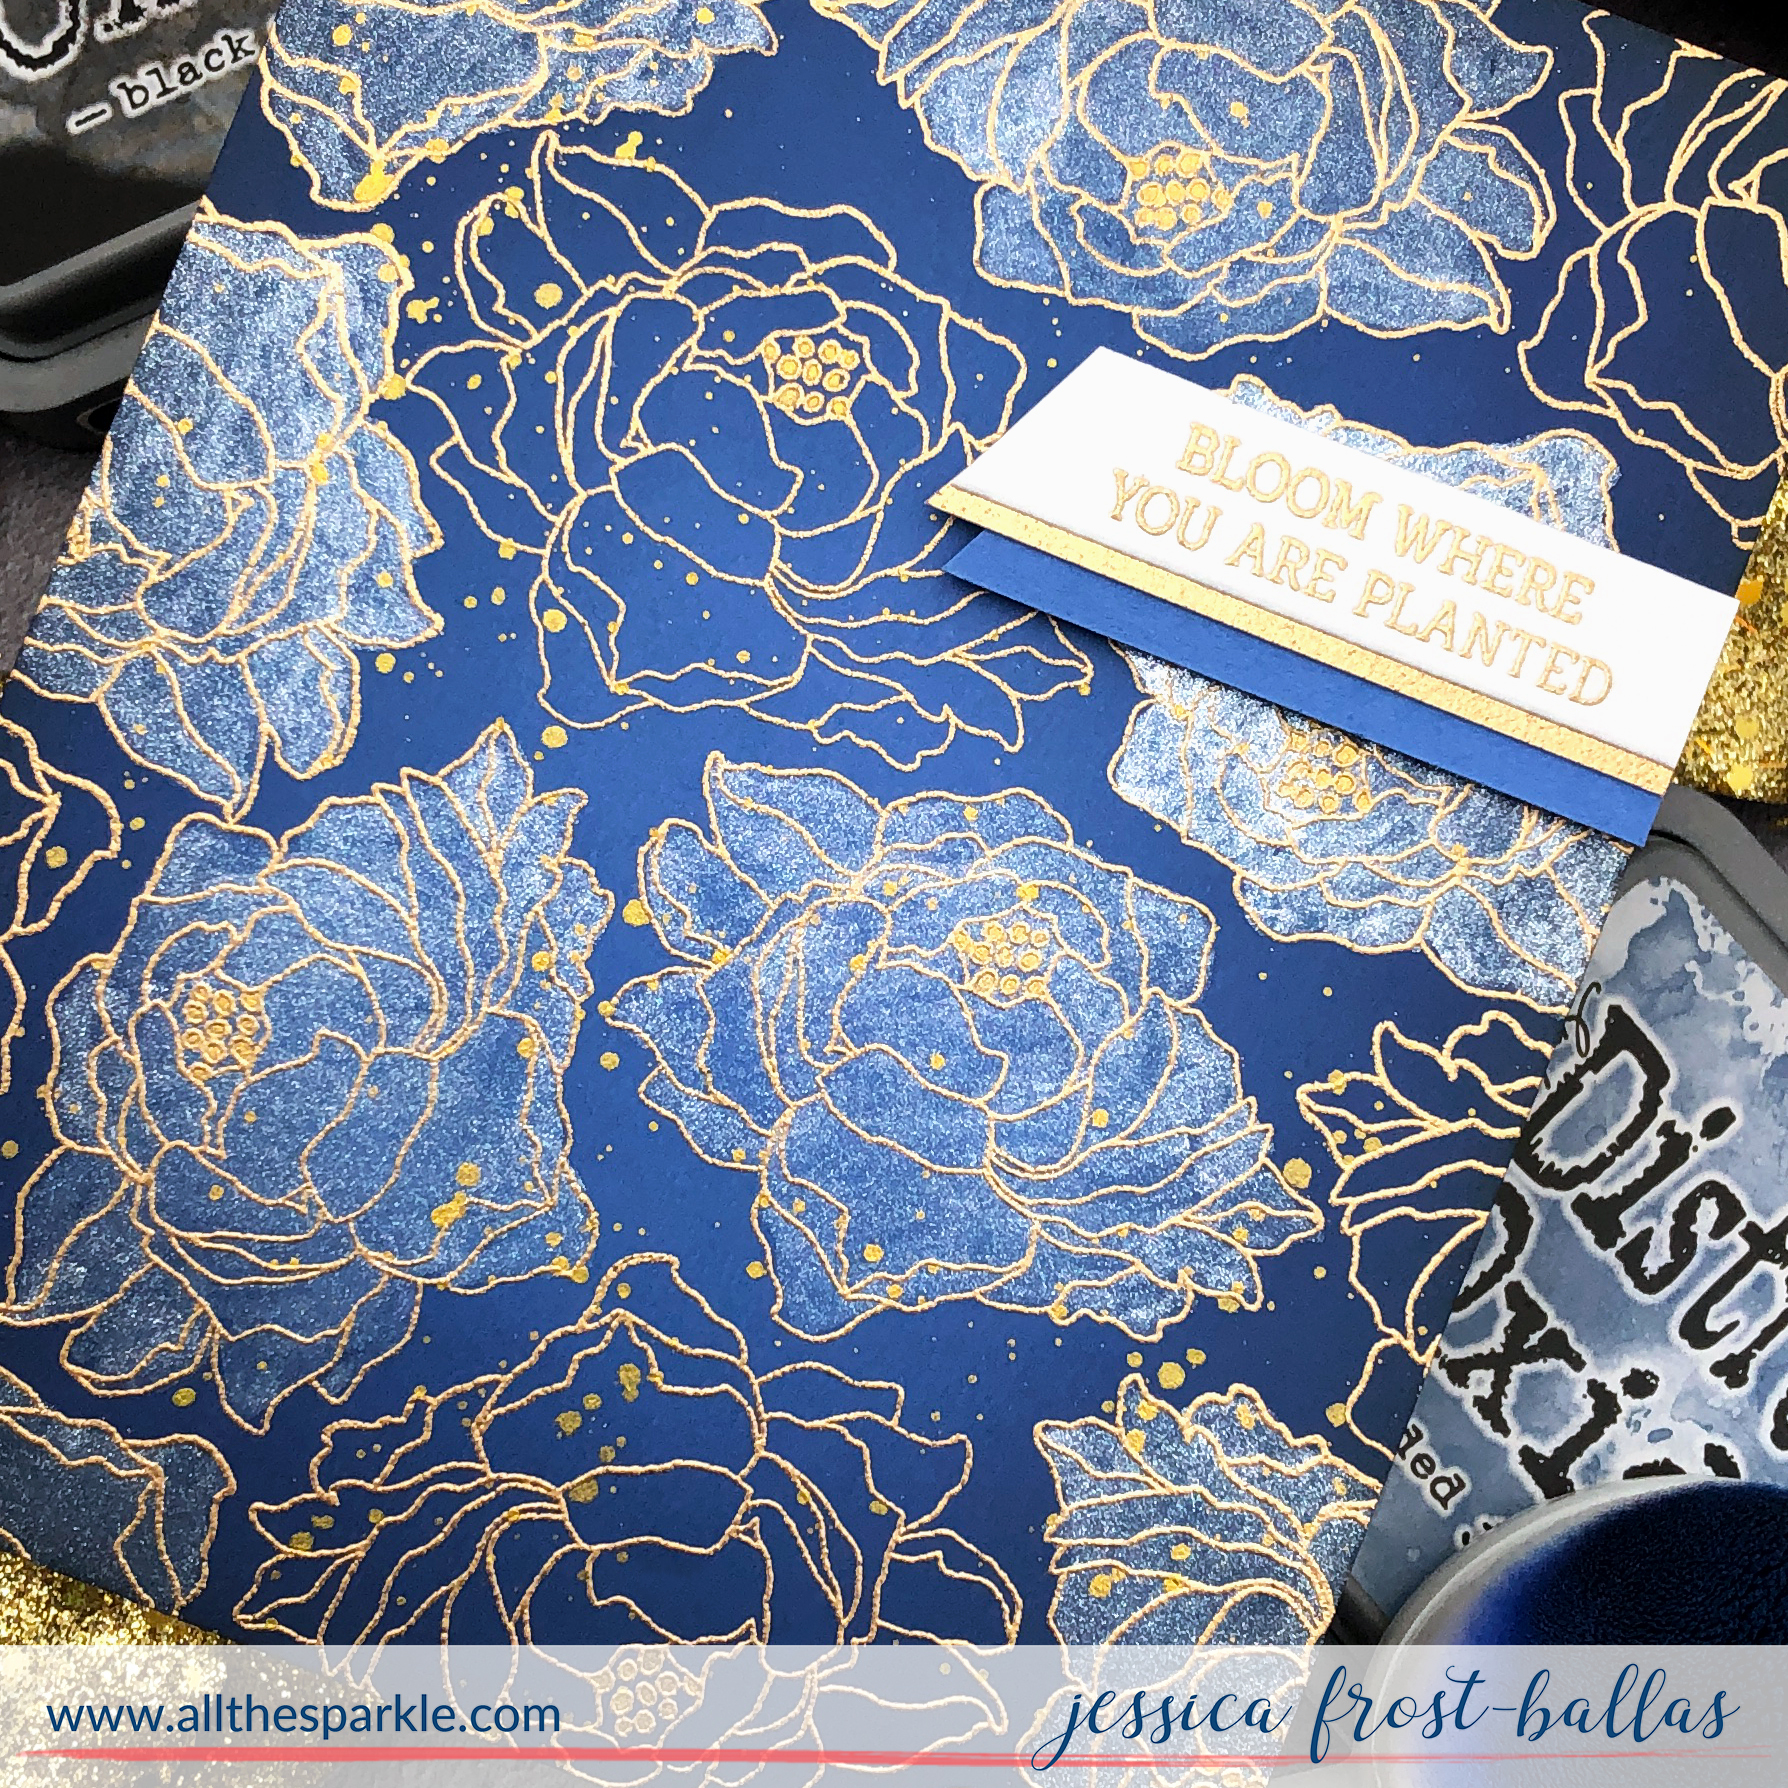 Flamingo Botanical by Jessica Frost-Ballas for Rabbit Hole Designs